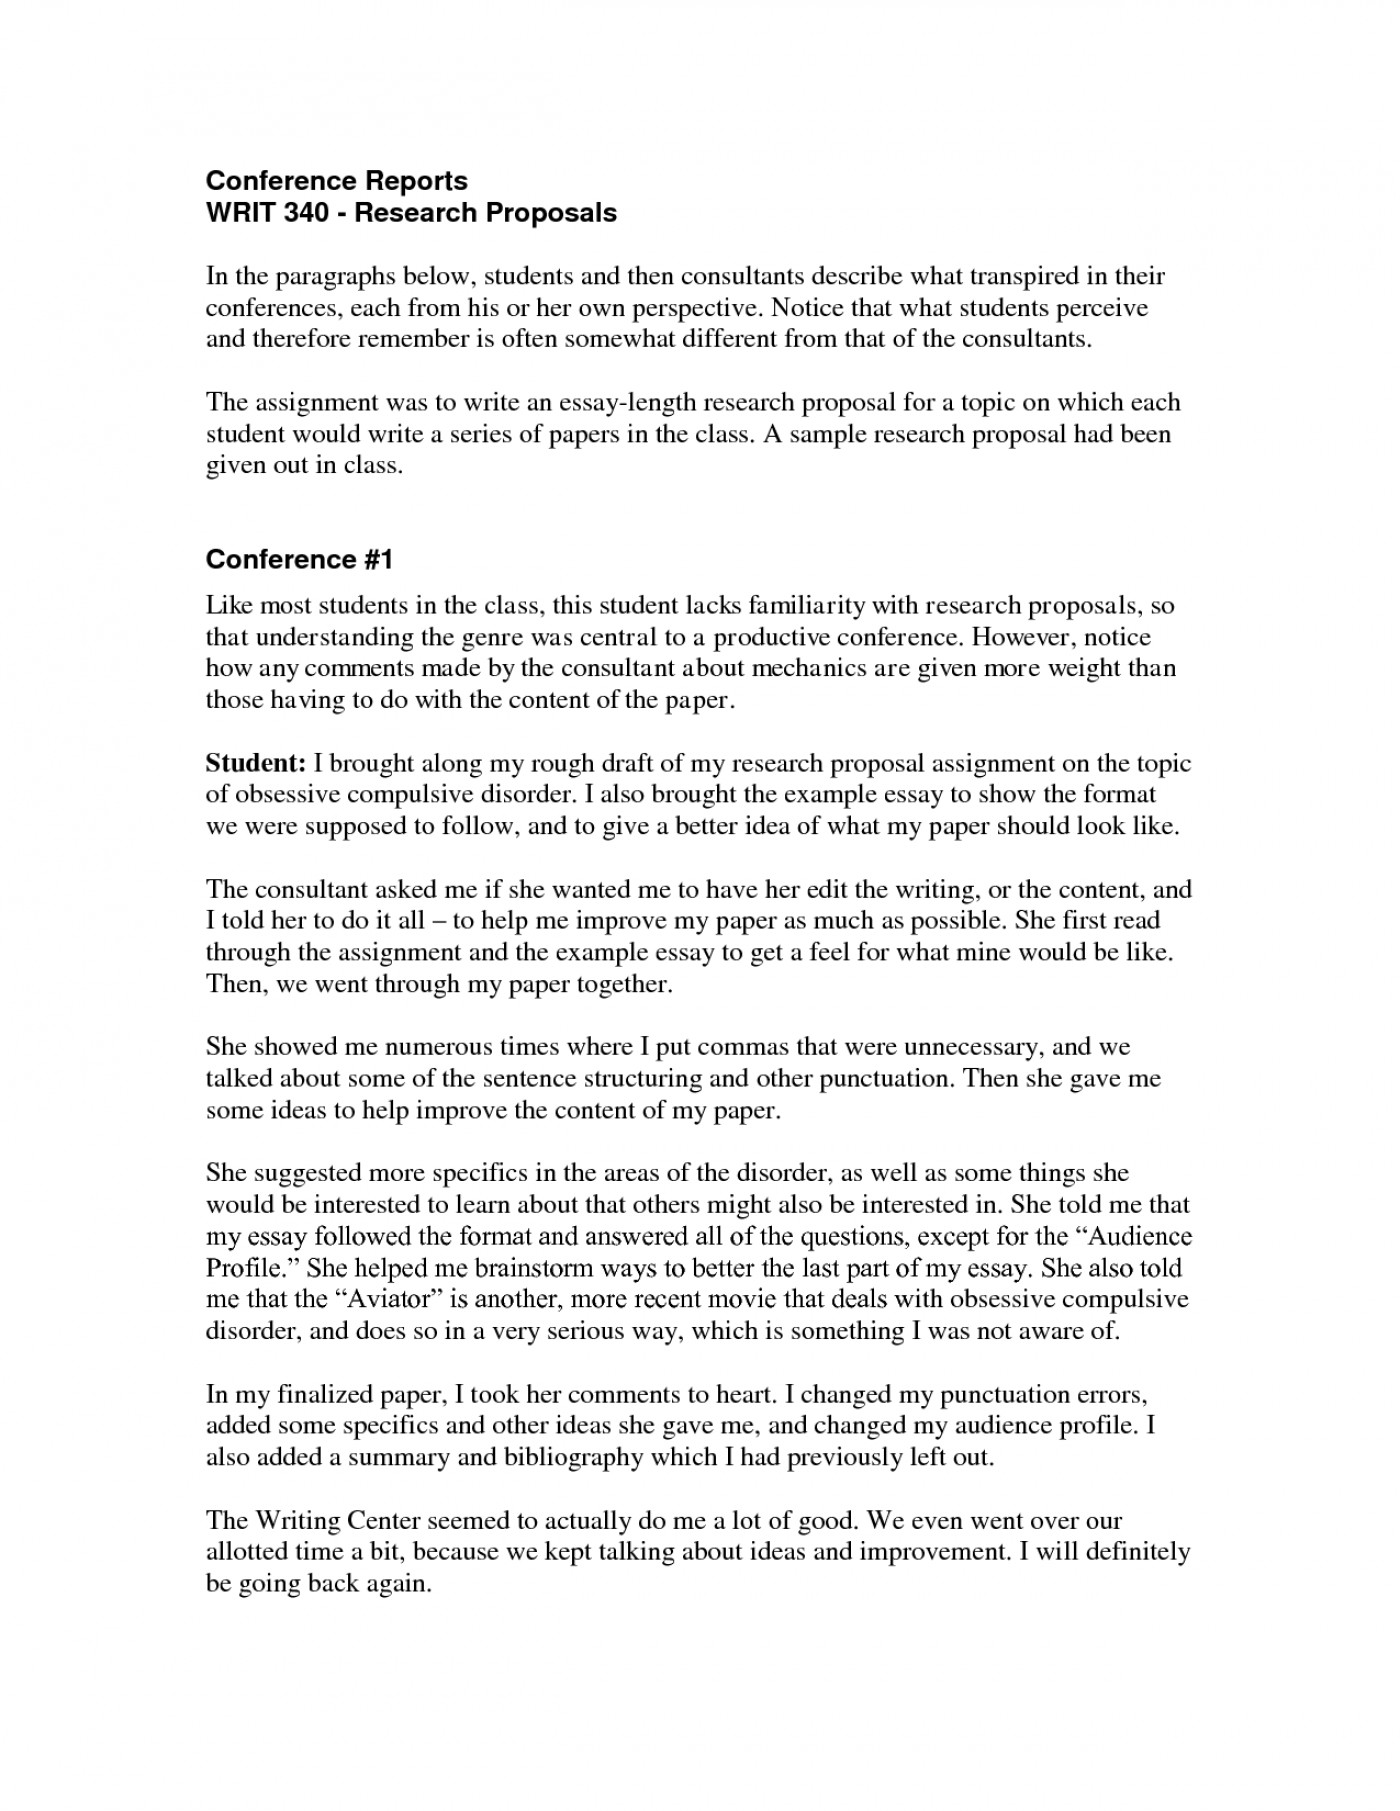 008 Apa Research Paper Proposal Sample 542914 Template For Beautiful A Example Of Writing 1400